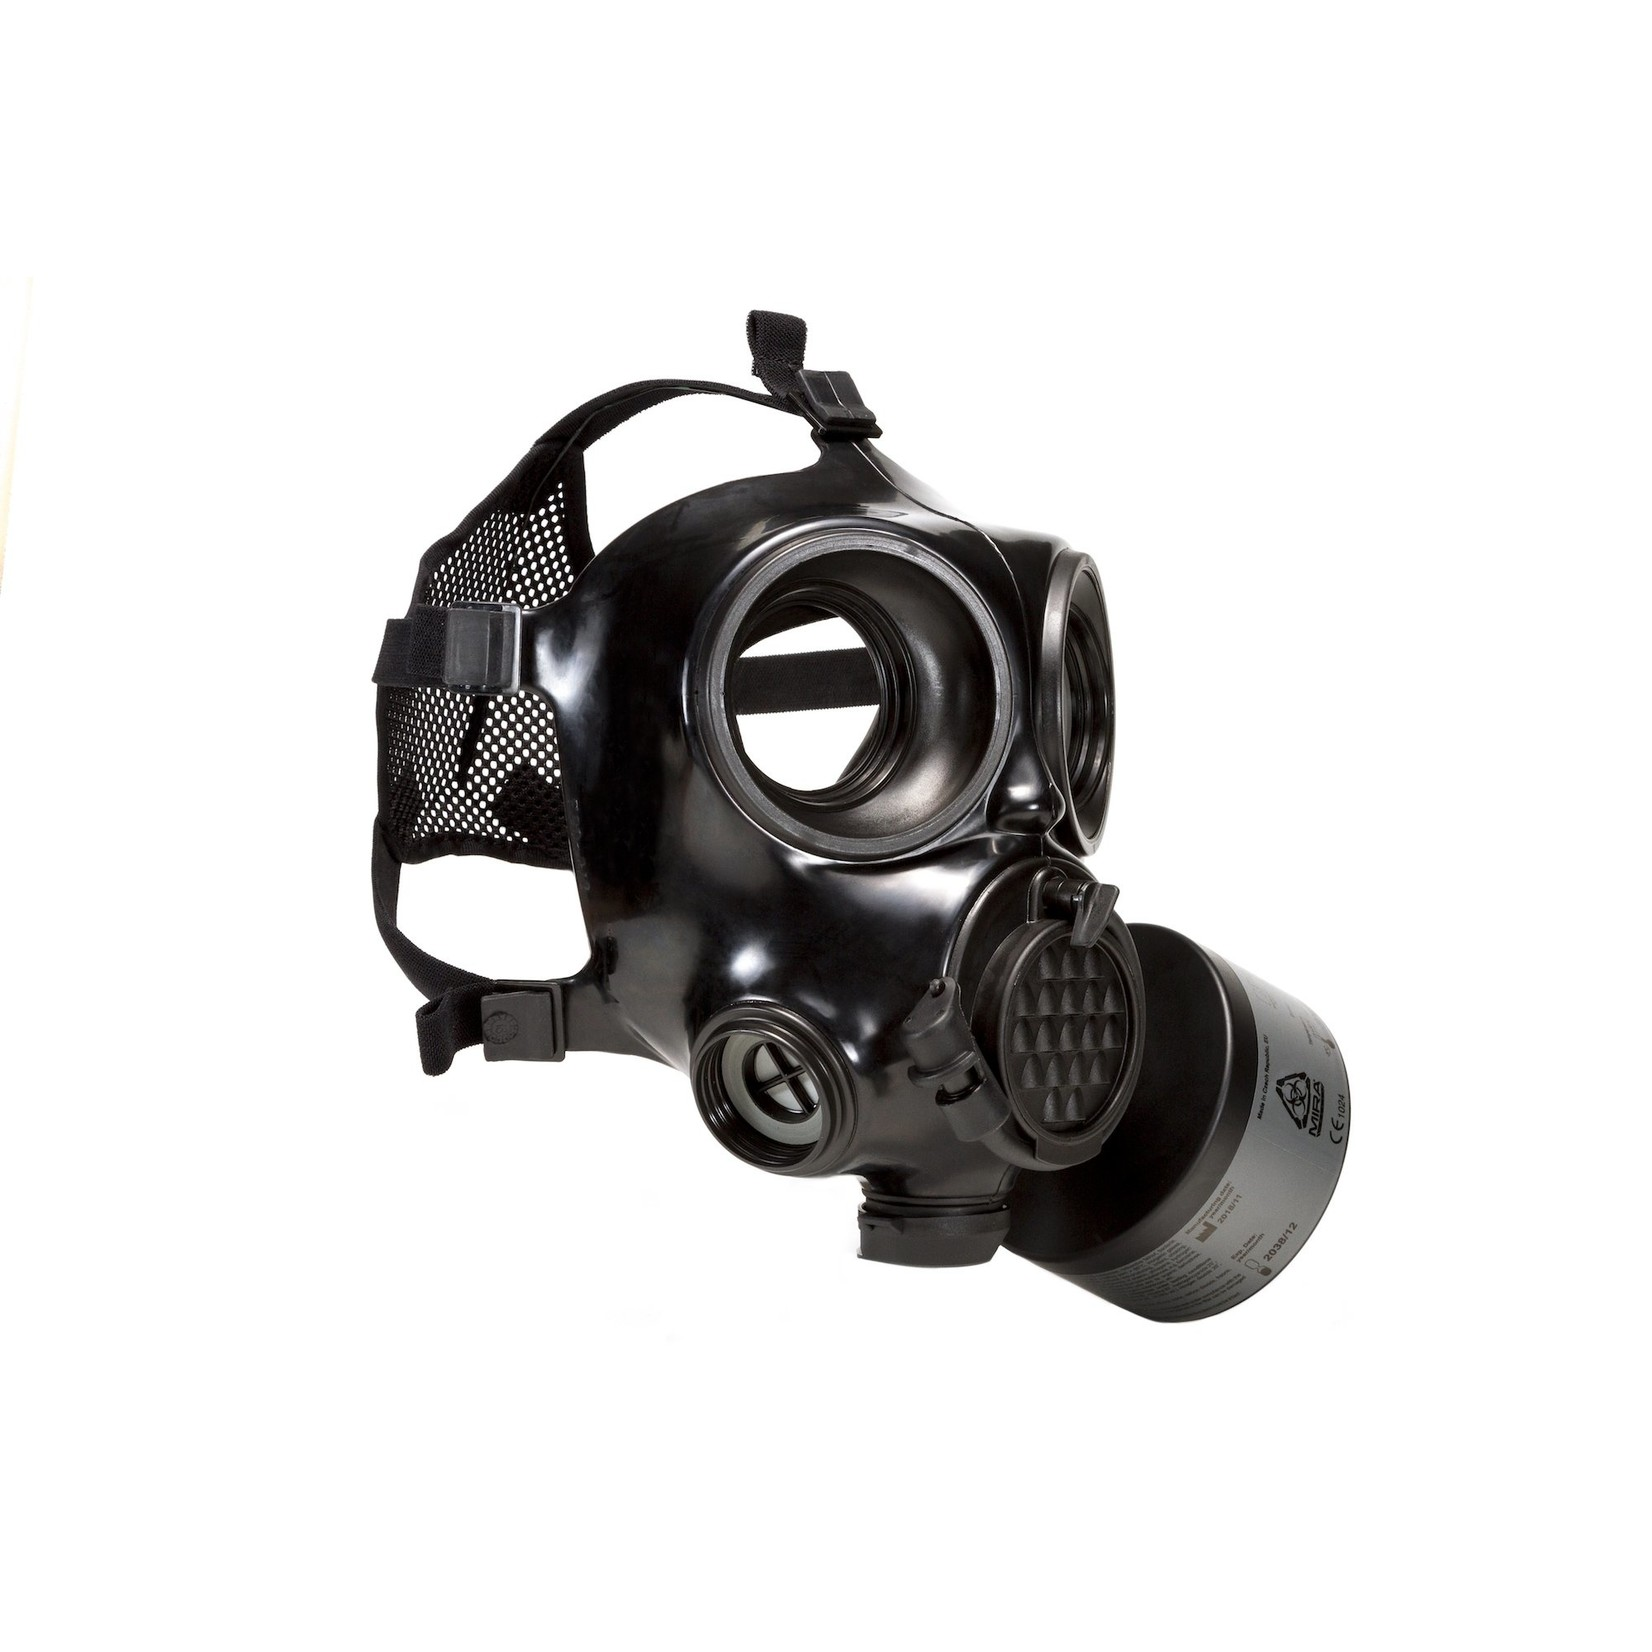 MIRA SAFETY CM-7M MILITARY GAS MASK - CBRN PROTECTION